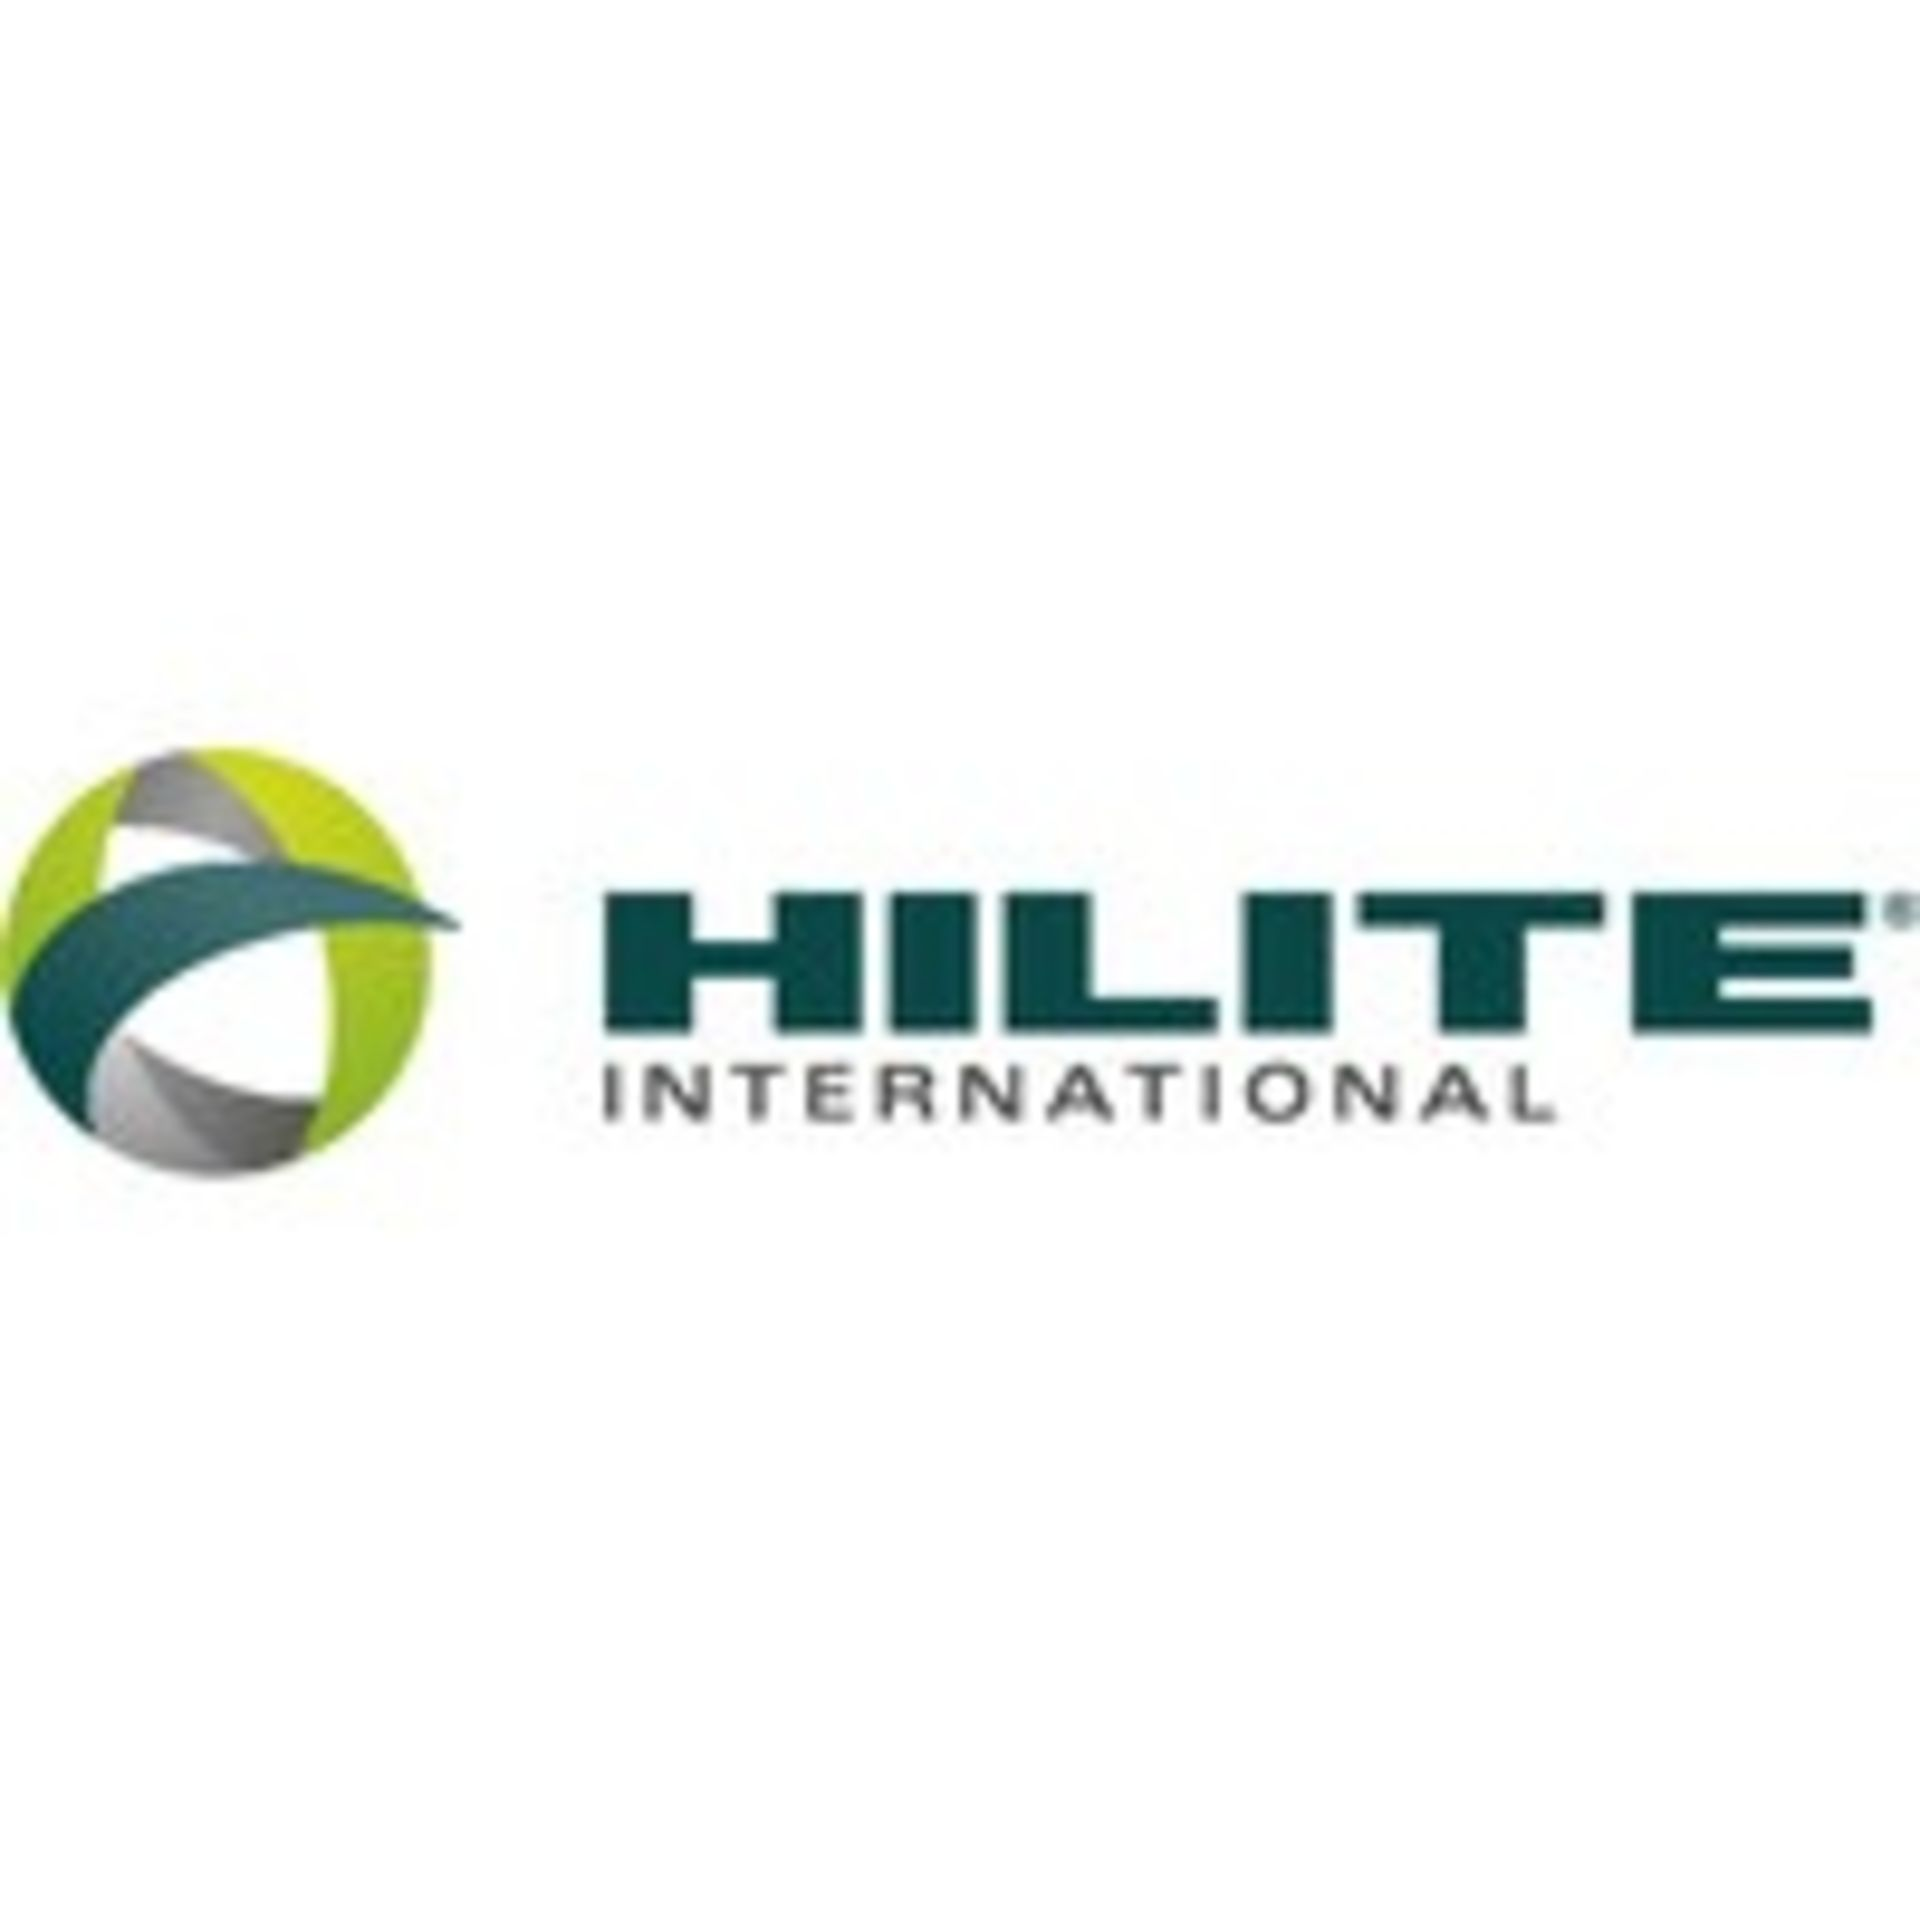 Hilite Industries – Sale #: 2 - Surplus CNC Machinery & Equipment (Broadway Location ONLY)